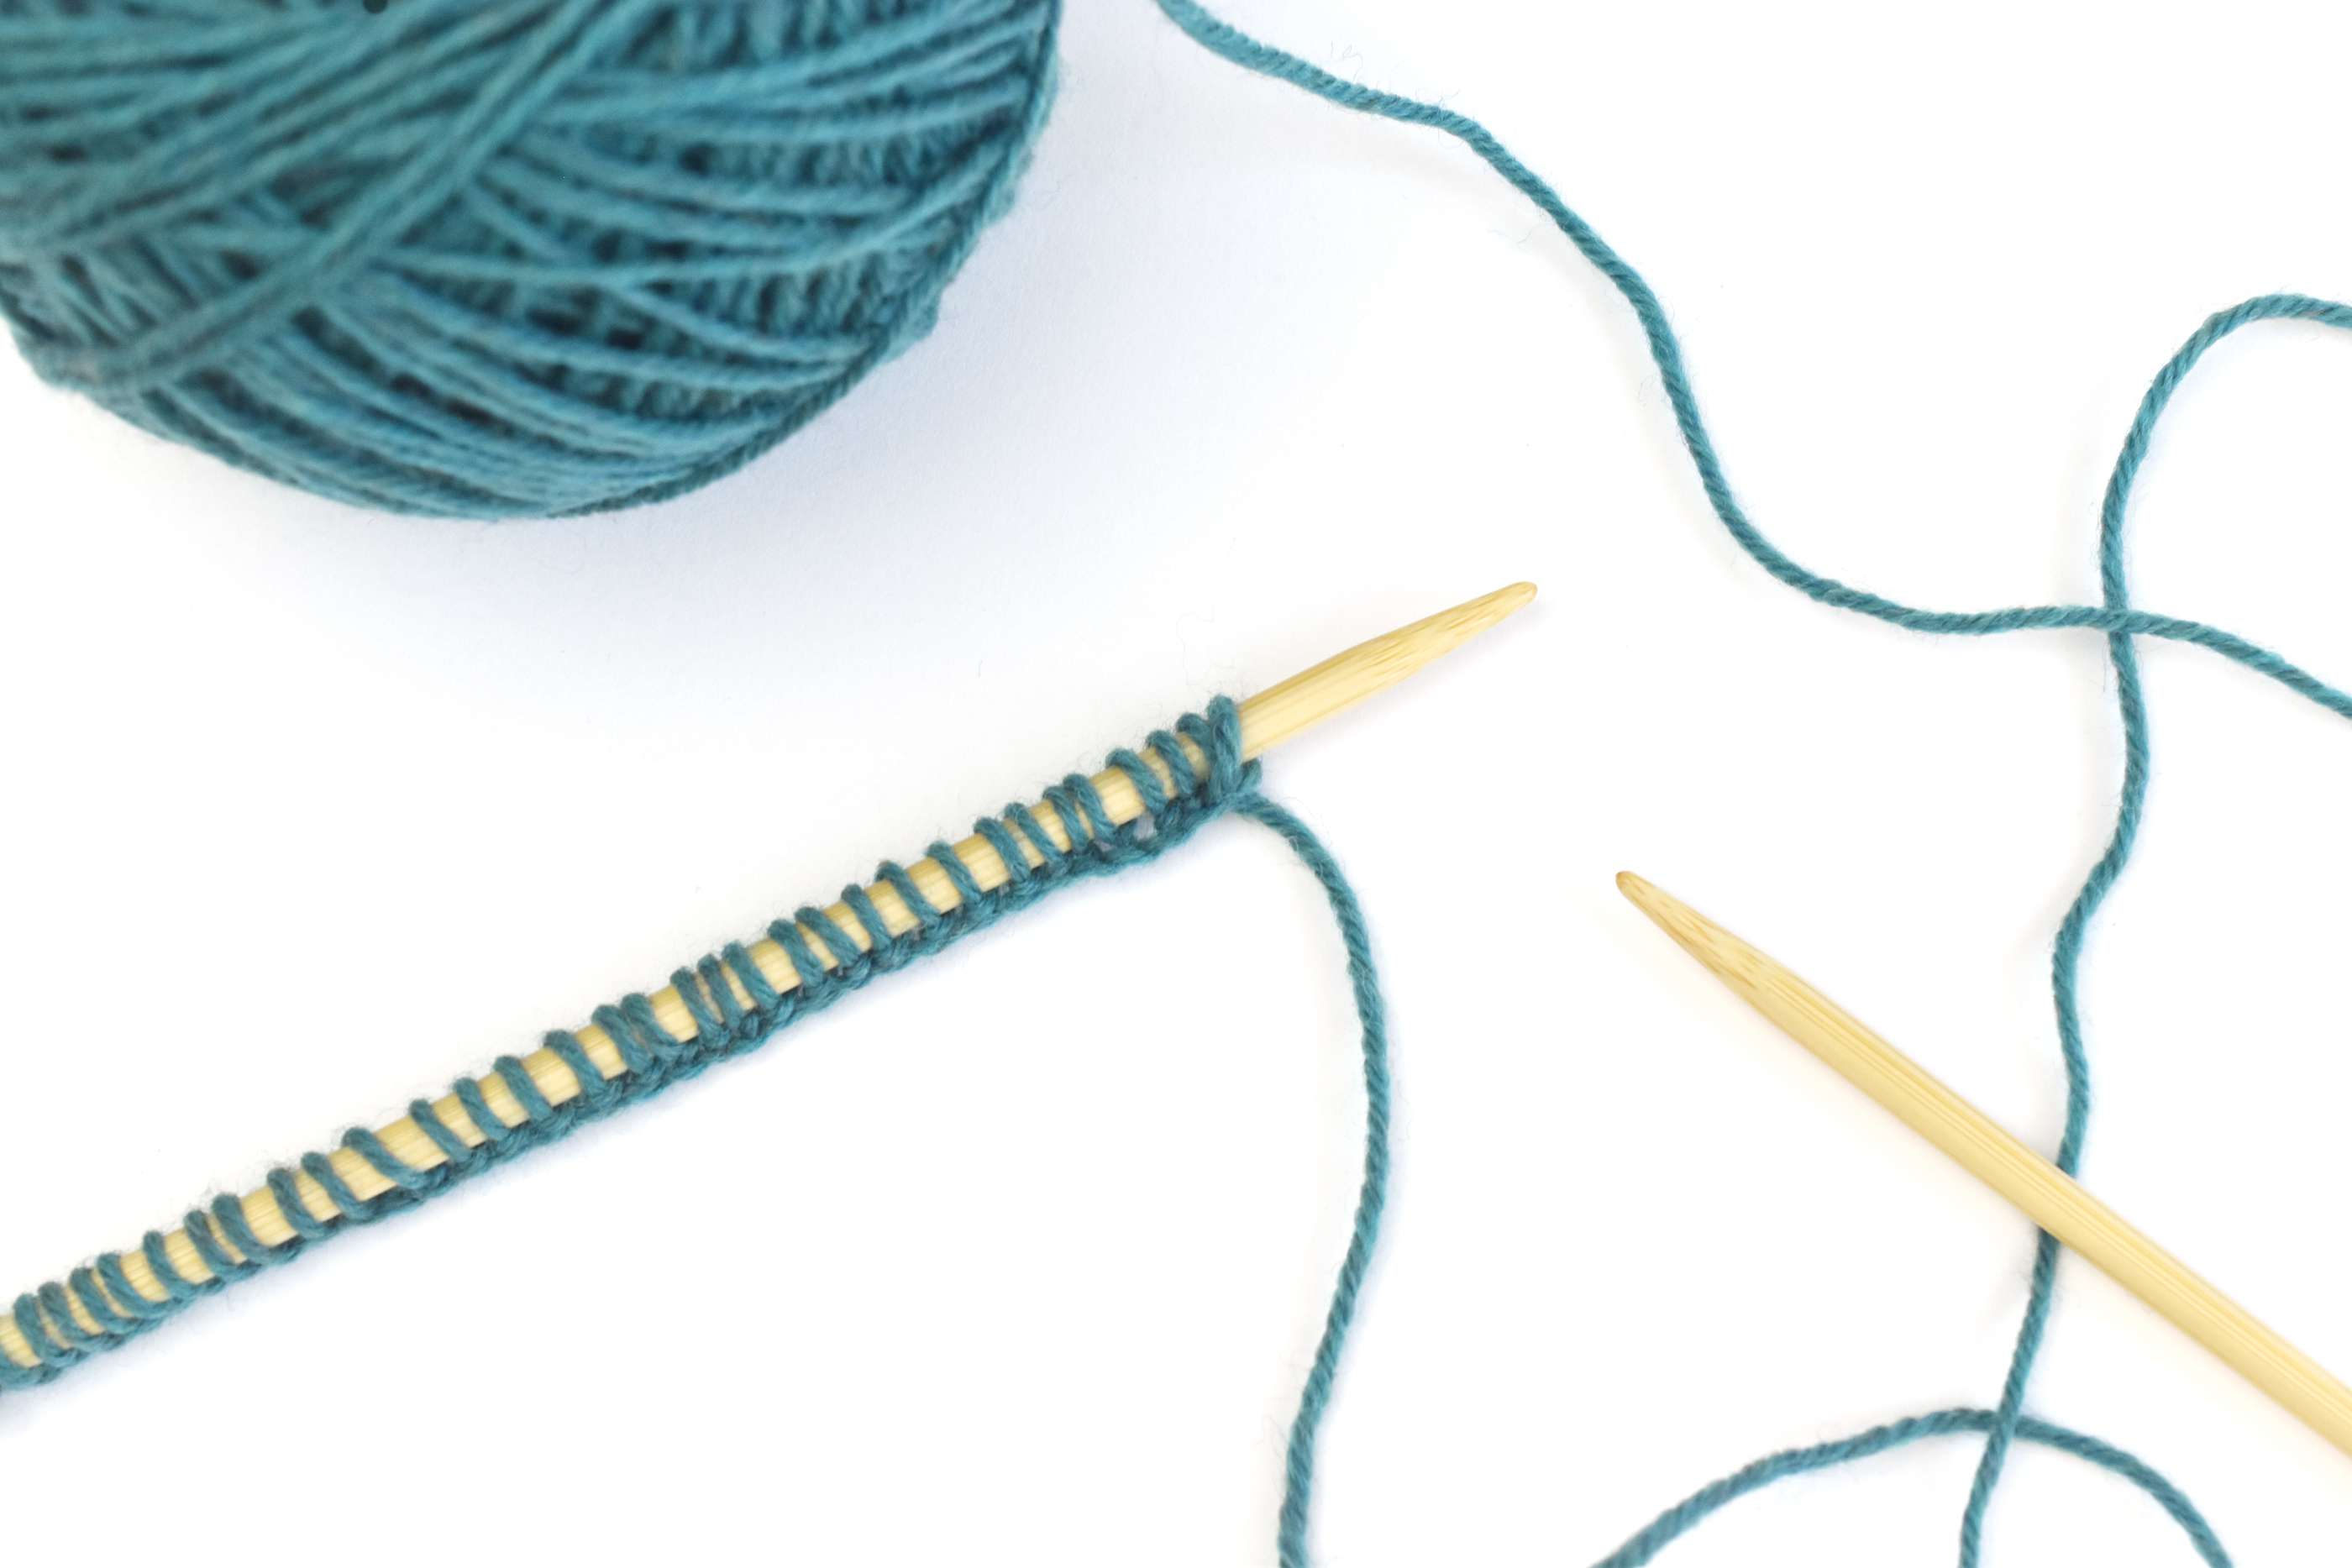 Continue Casting On Stitches